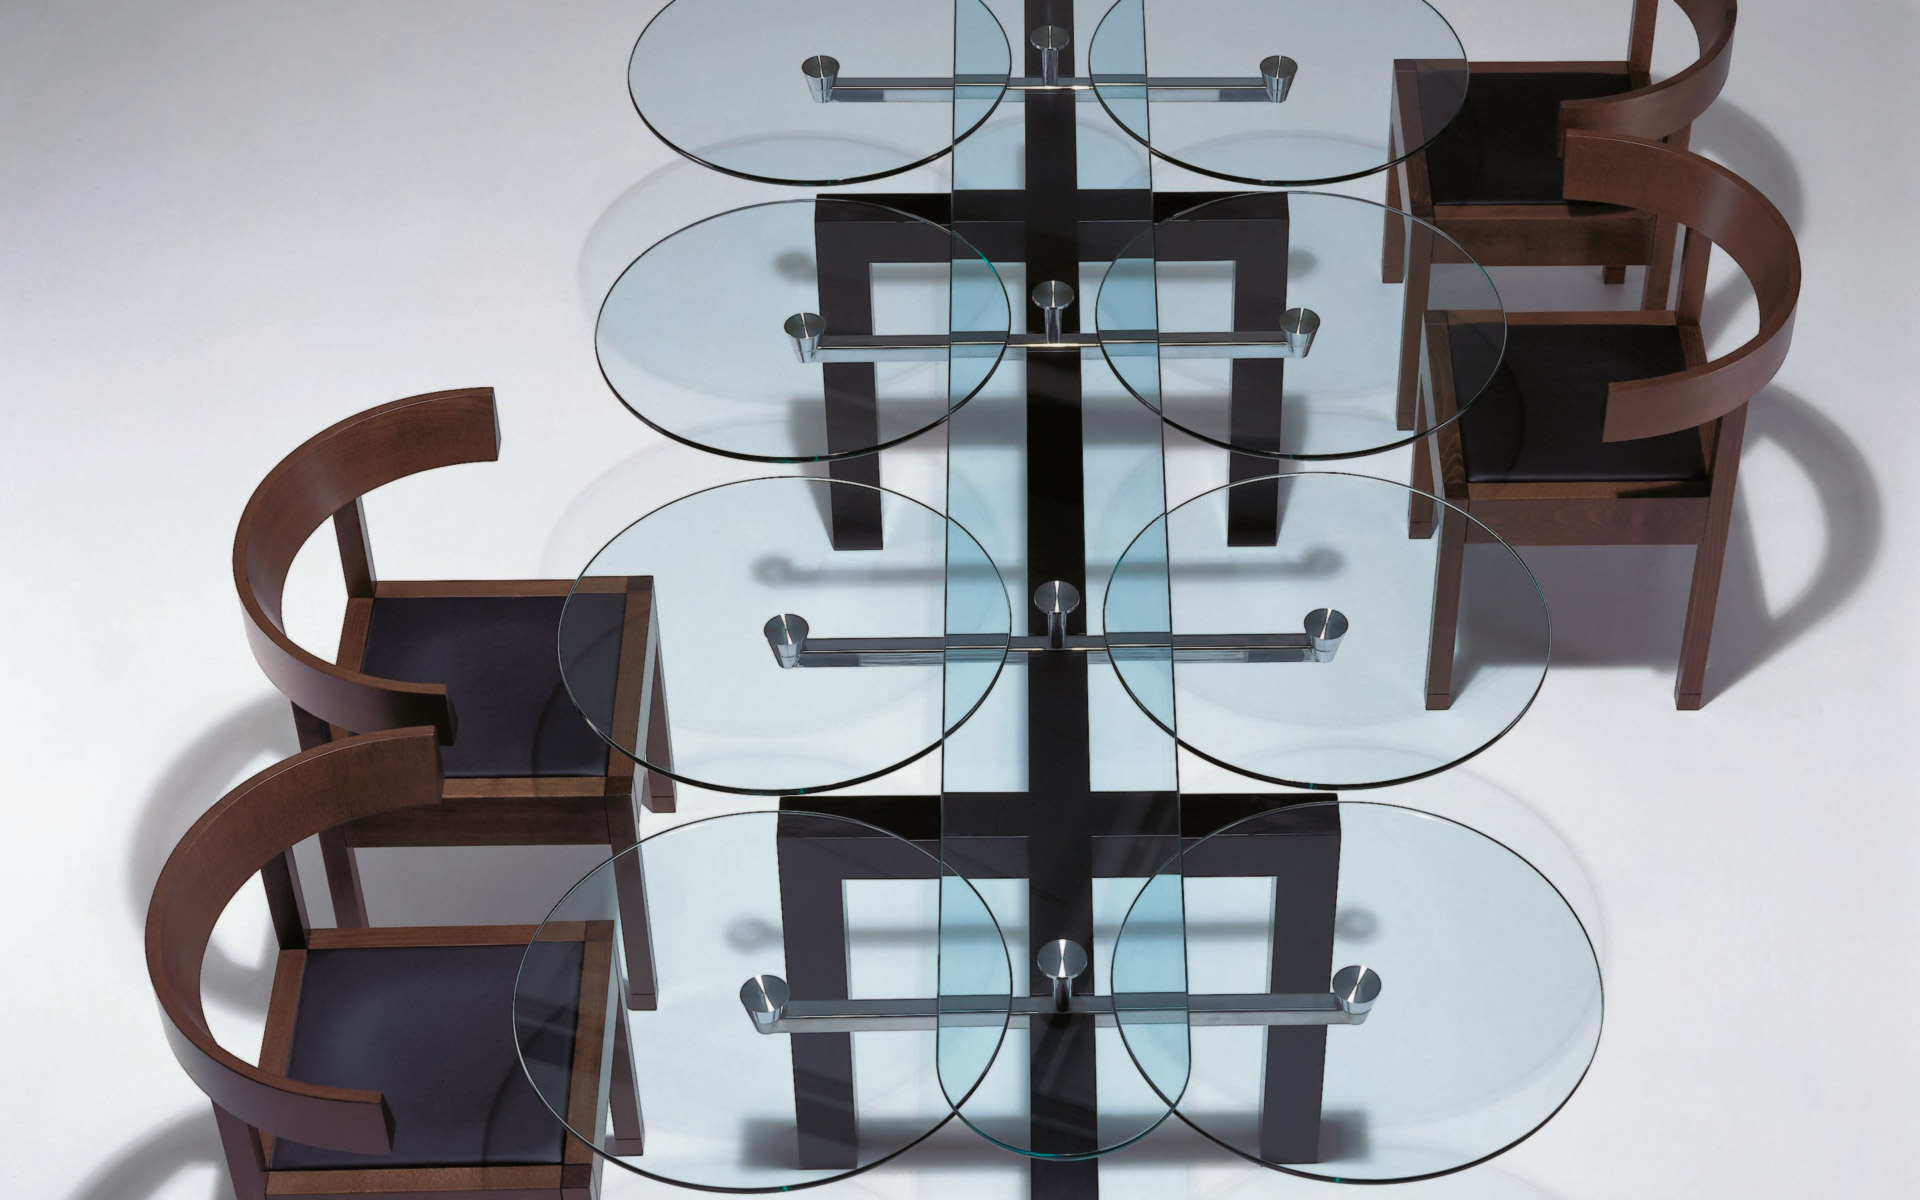 Ultra modern dining room chairs - 1318 02 03